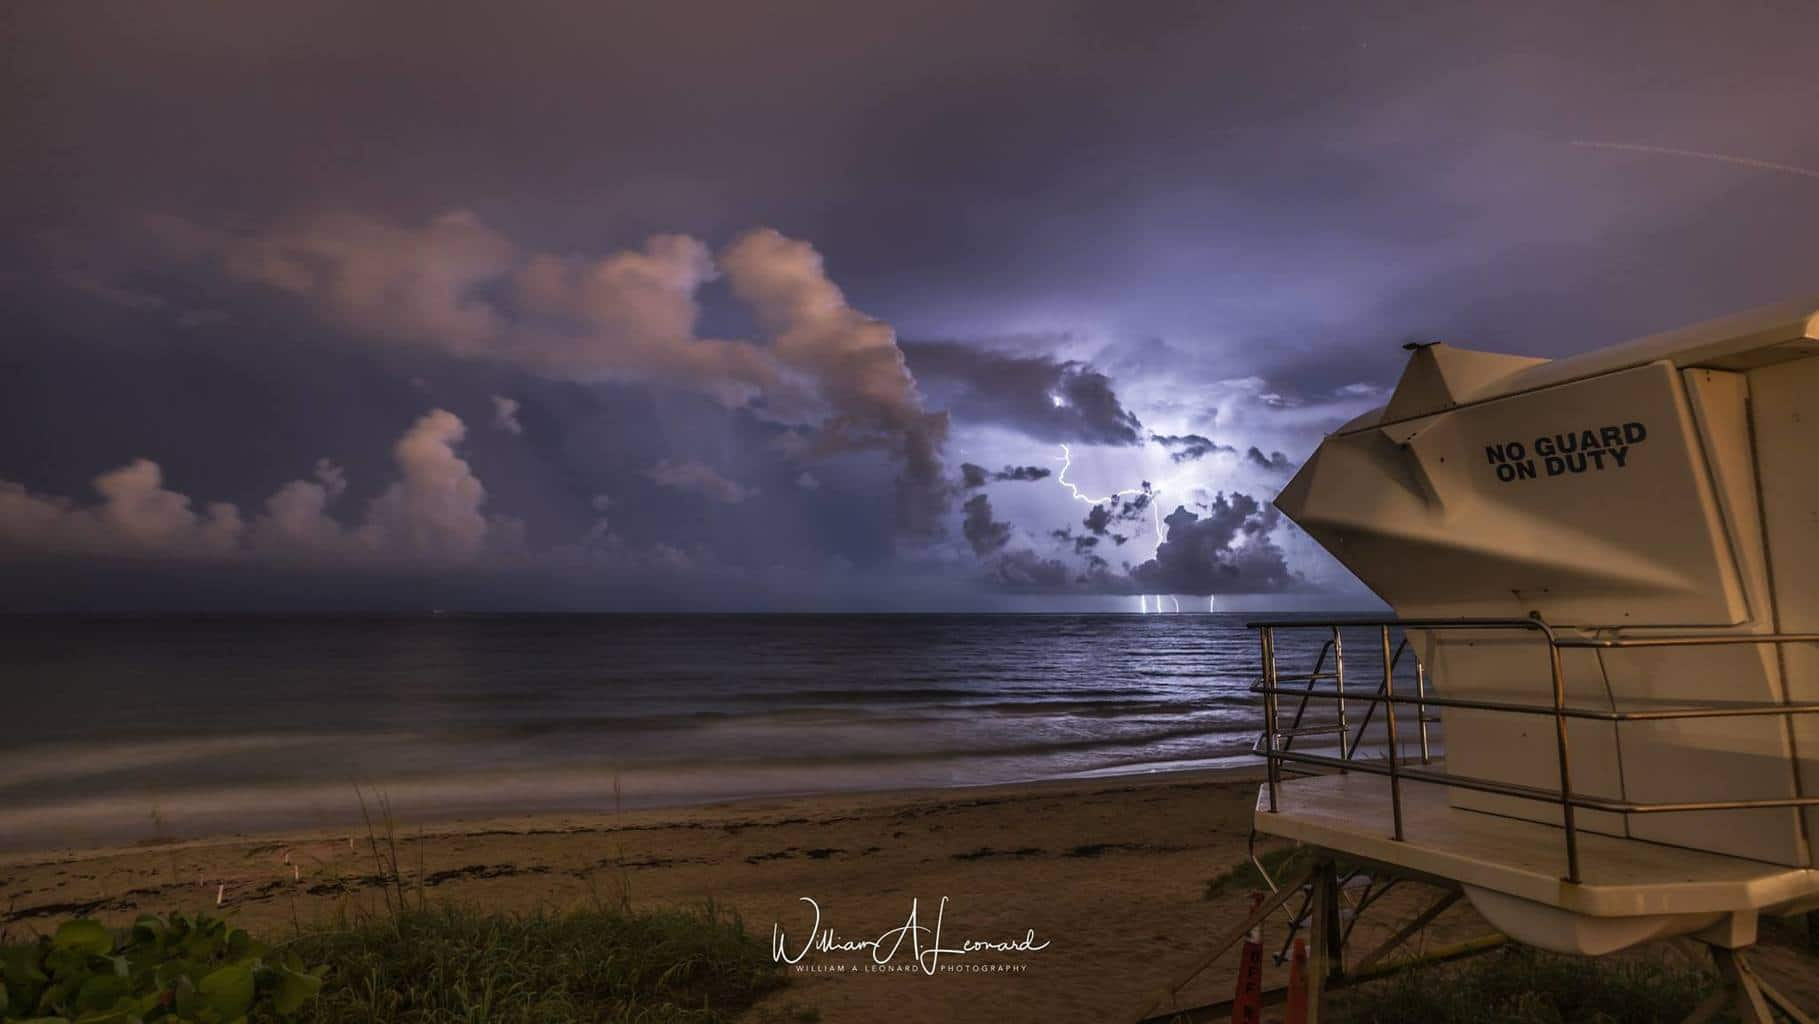 Small Cell Off Palm Beach last night testing the Pluto Trigger